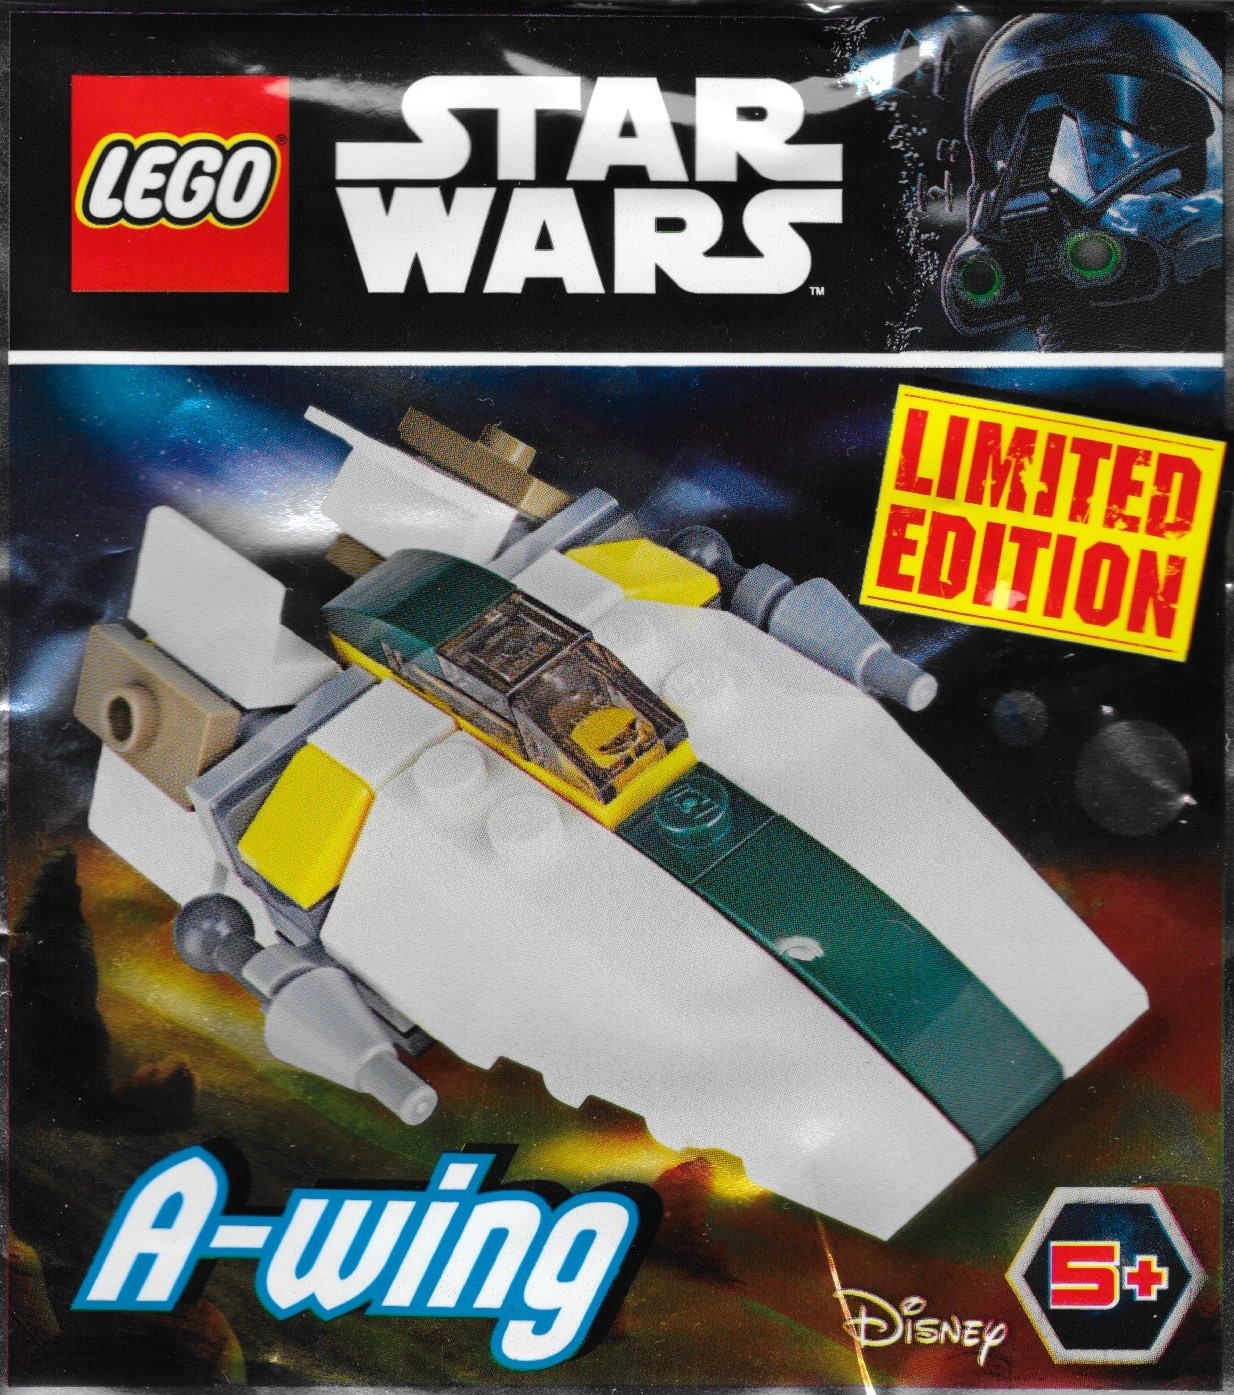 Star Wars Magazine Gift Brickset Lego Set Guide And